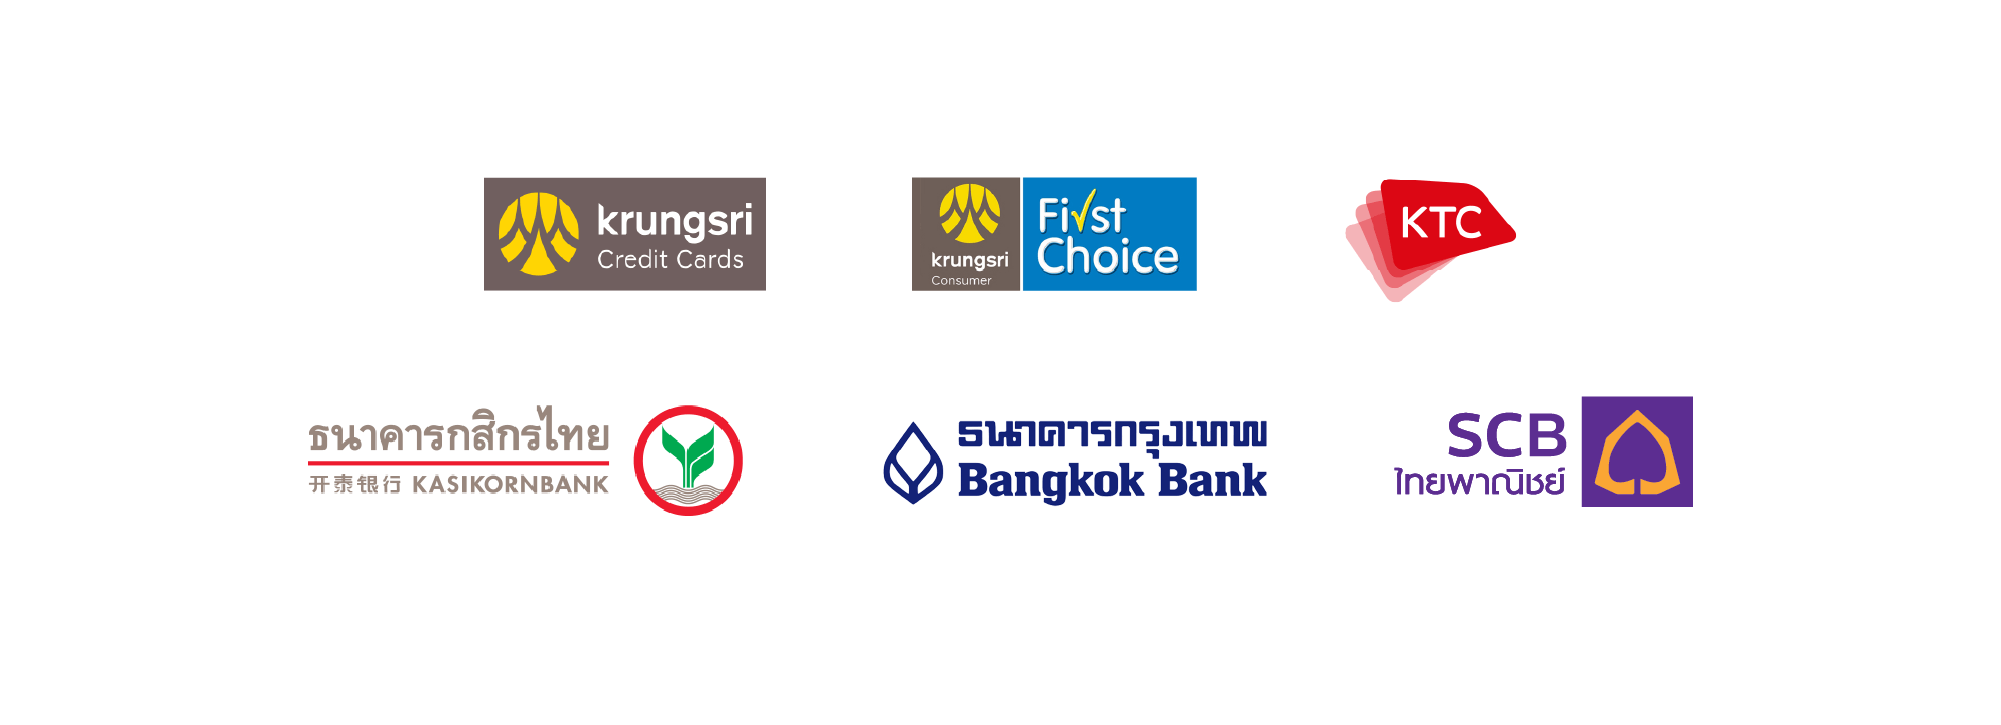 Supported card brands